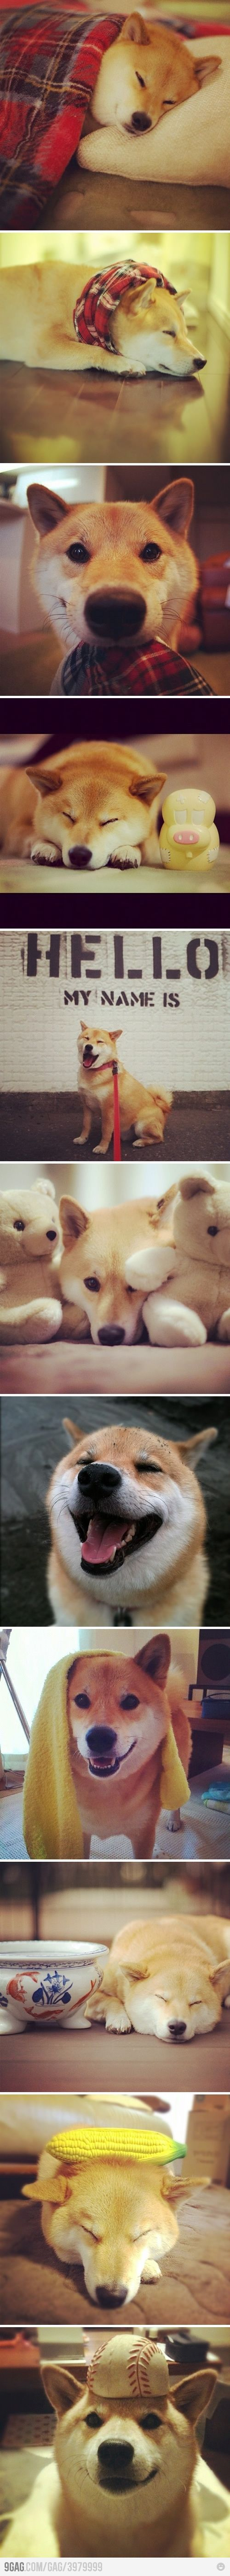 best naptime images on pinterest adorable animals cute dogs